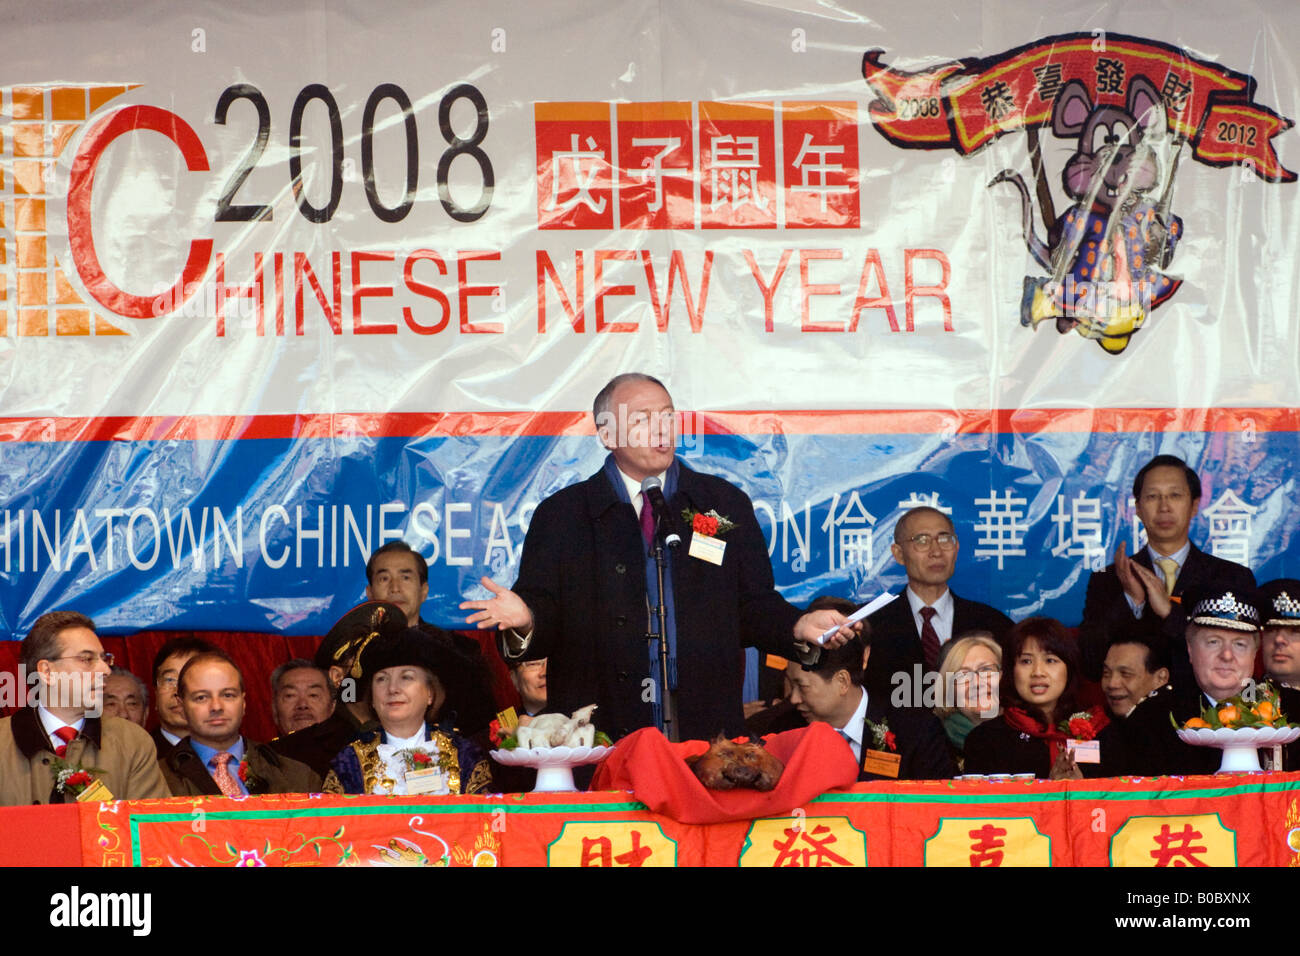 Ex Mayor of London Ken Livingstone and dignitaries addresses the crowd at the opening ceremony of Chinese New Year. - Stock Image